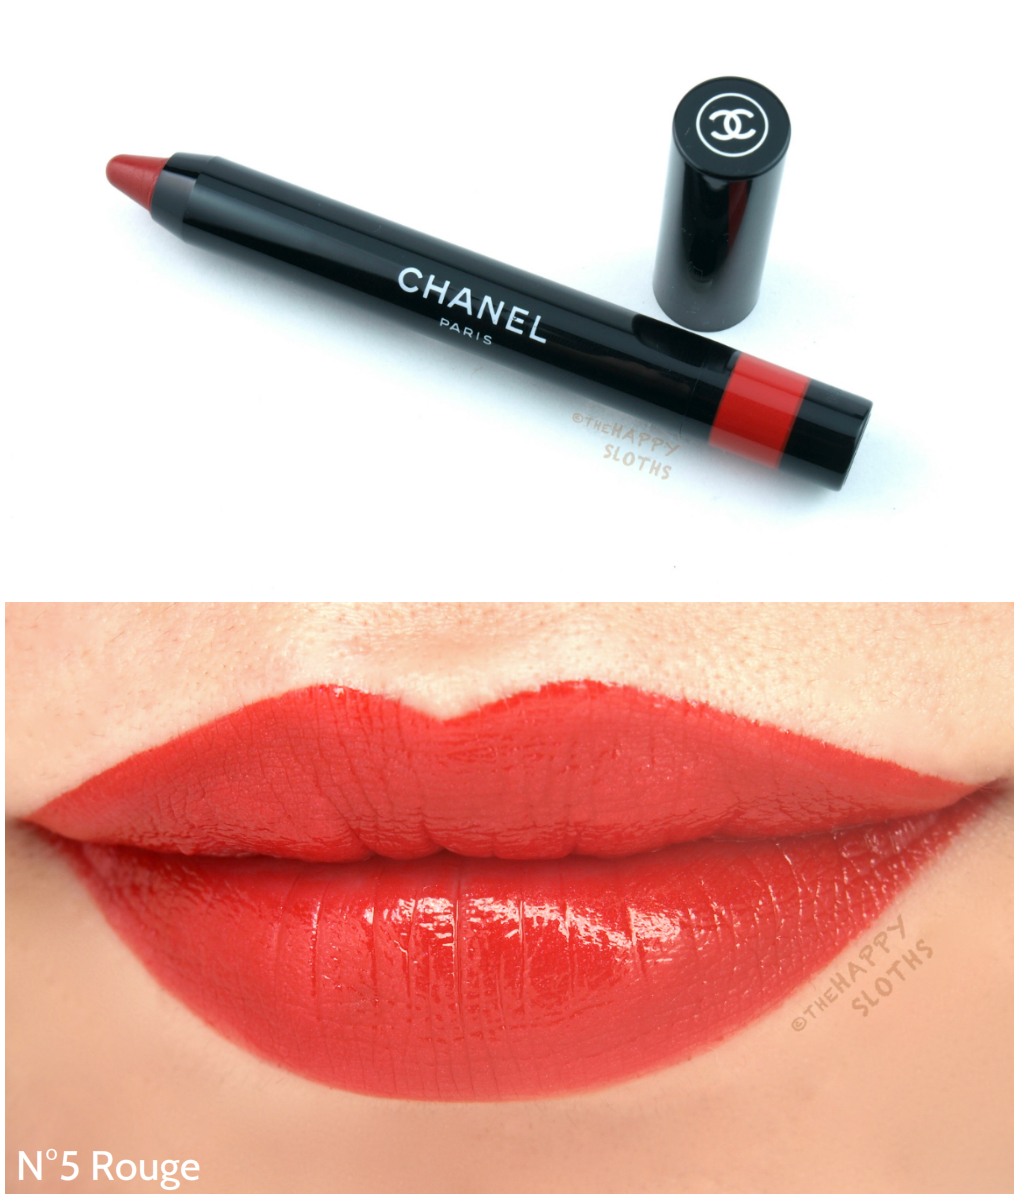 Chanel Le Rouge Crayon de Couleur Review and Swatches: N5 Rouge